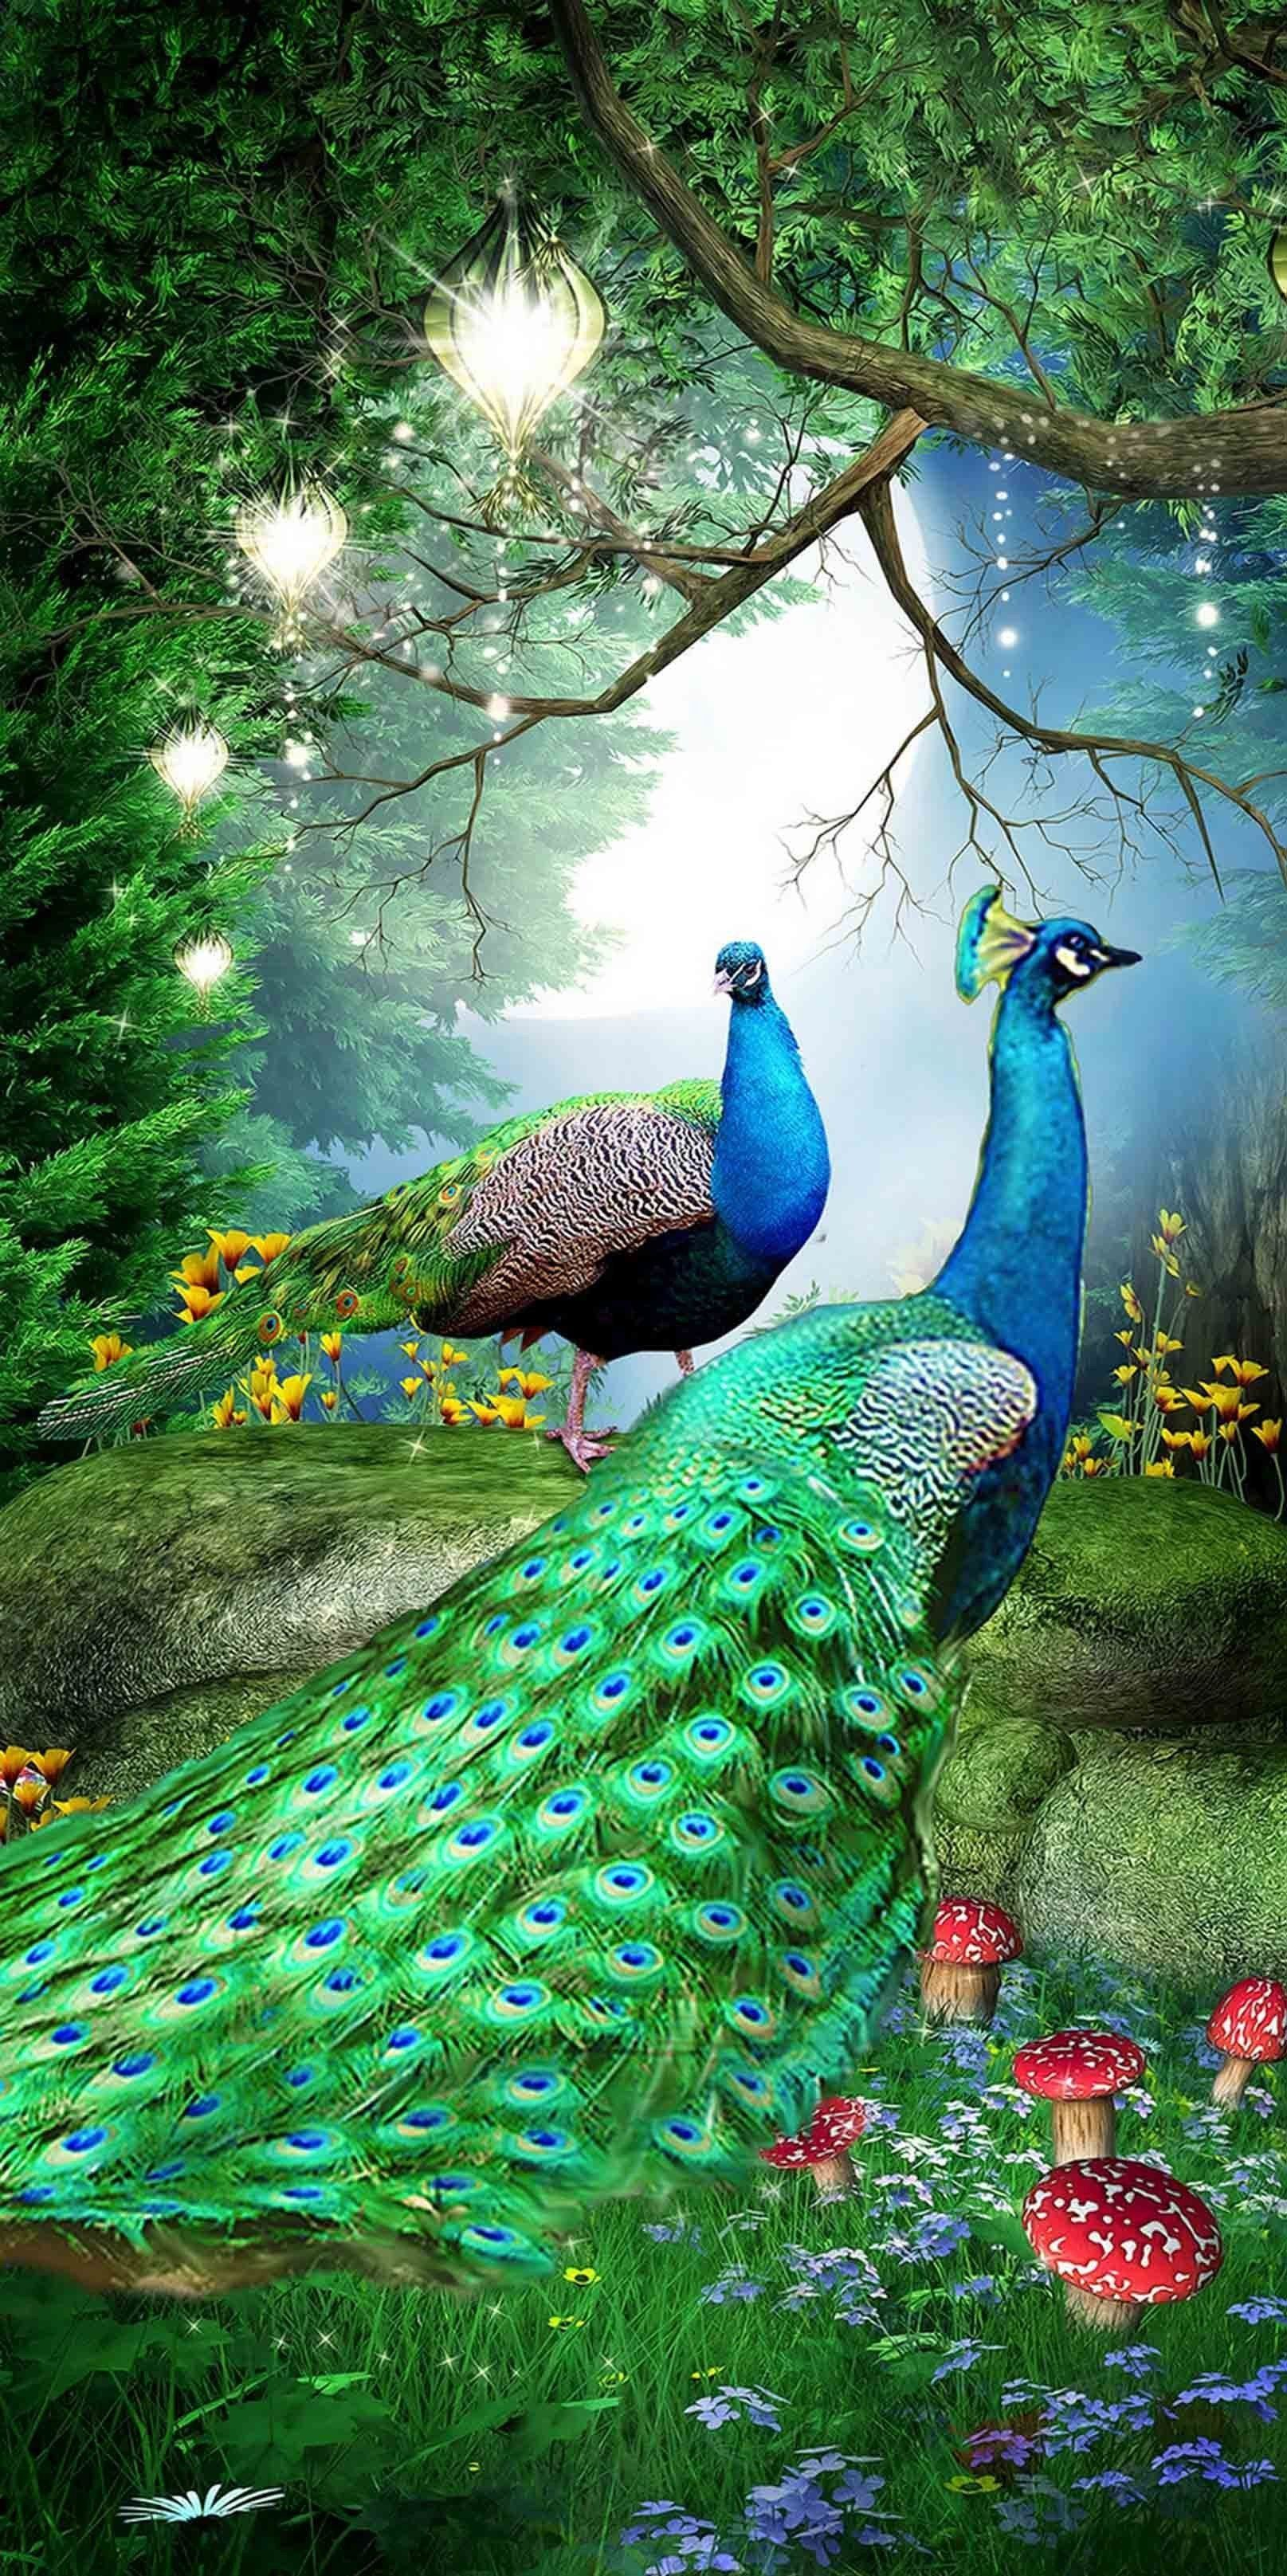 3d Forest Peacocks 1548 Stair Risers Peacock Pictures Peacock Painting Peacock Images